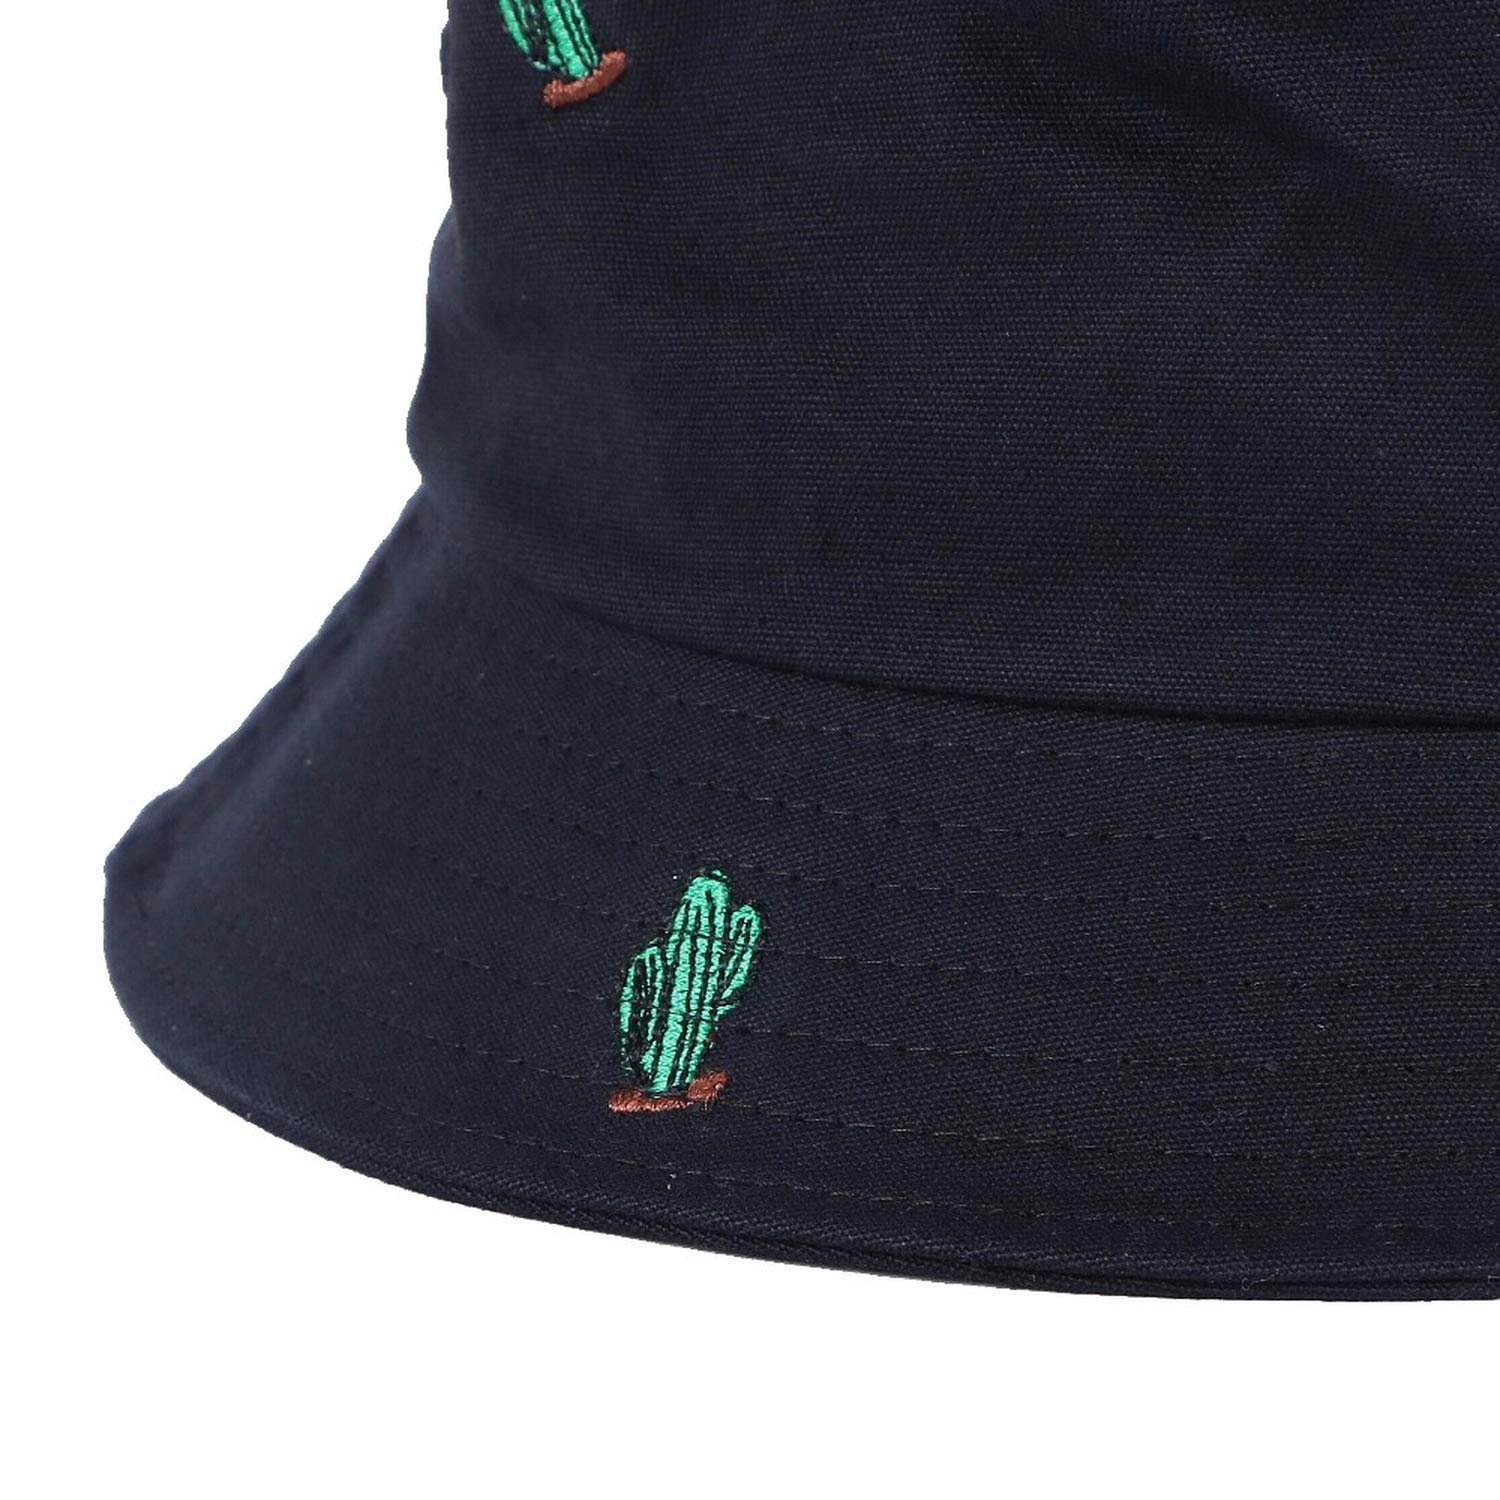 Wholesale Men Women New Bucket Hats Casual Cap Cactus Design Embroidery Simple Design Sun Hats Black at Amazon Womens Clothing store: